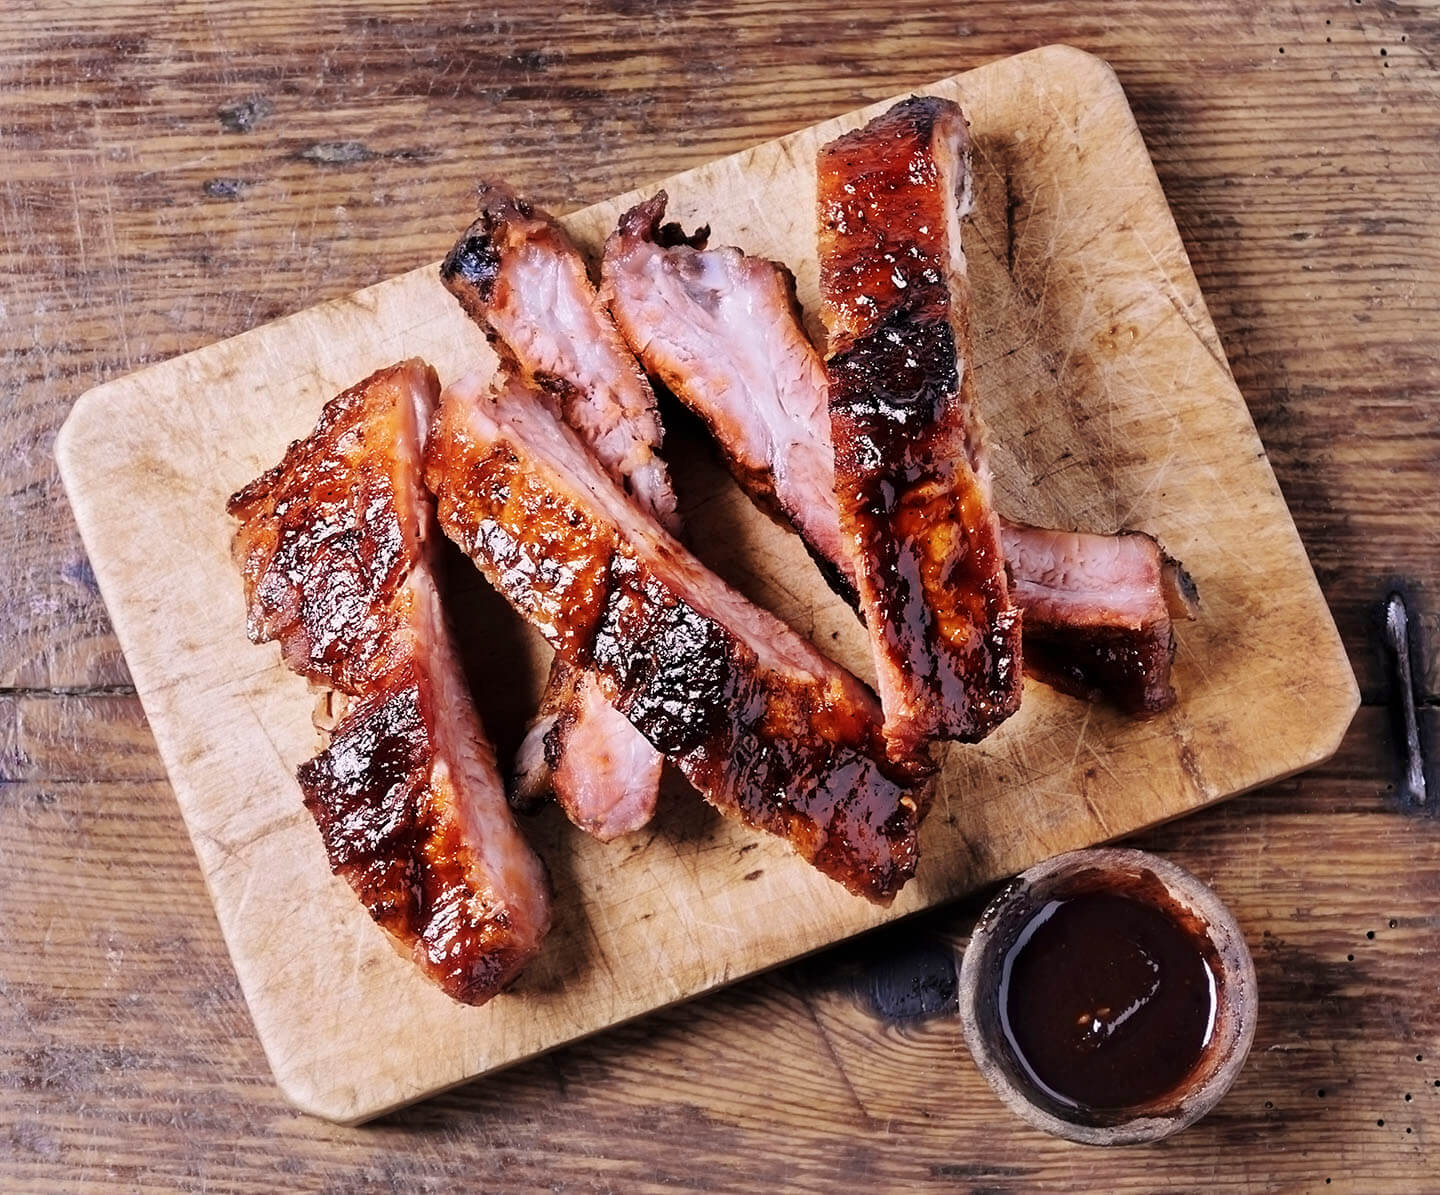 A sliced rack of barbeque ribs resting on a wooden cutting board.